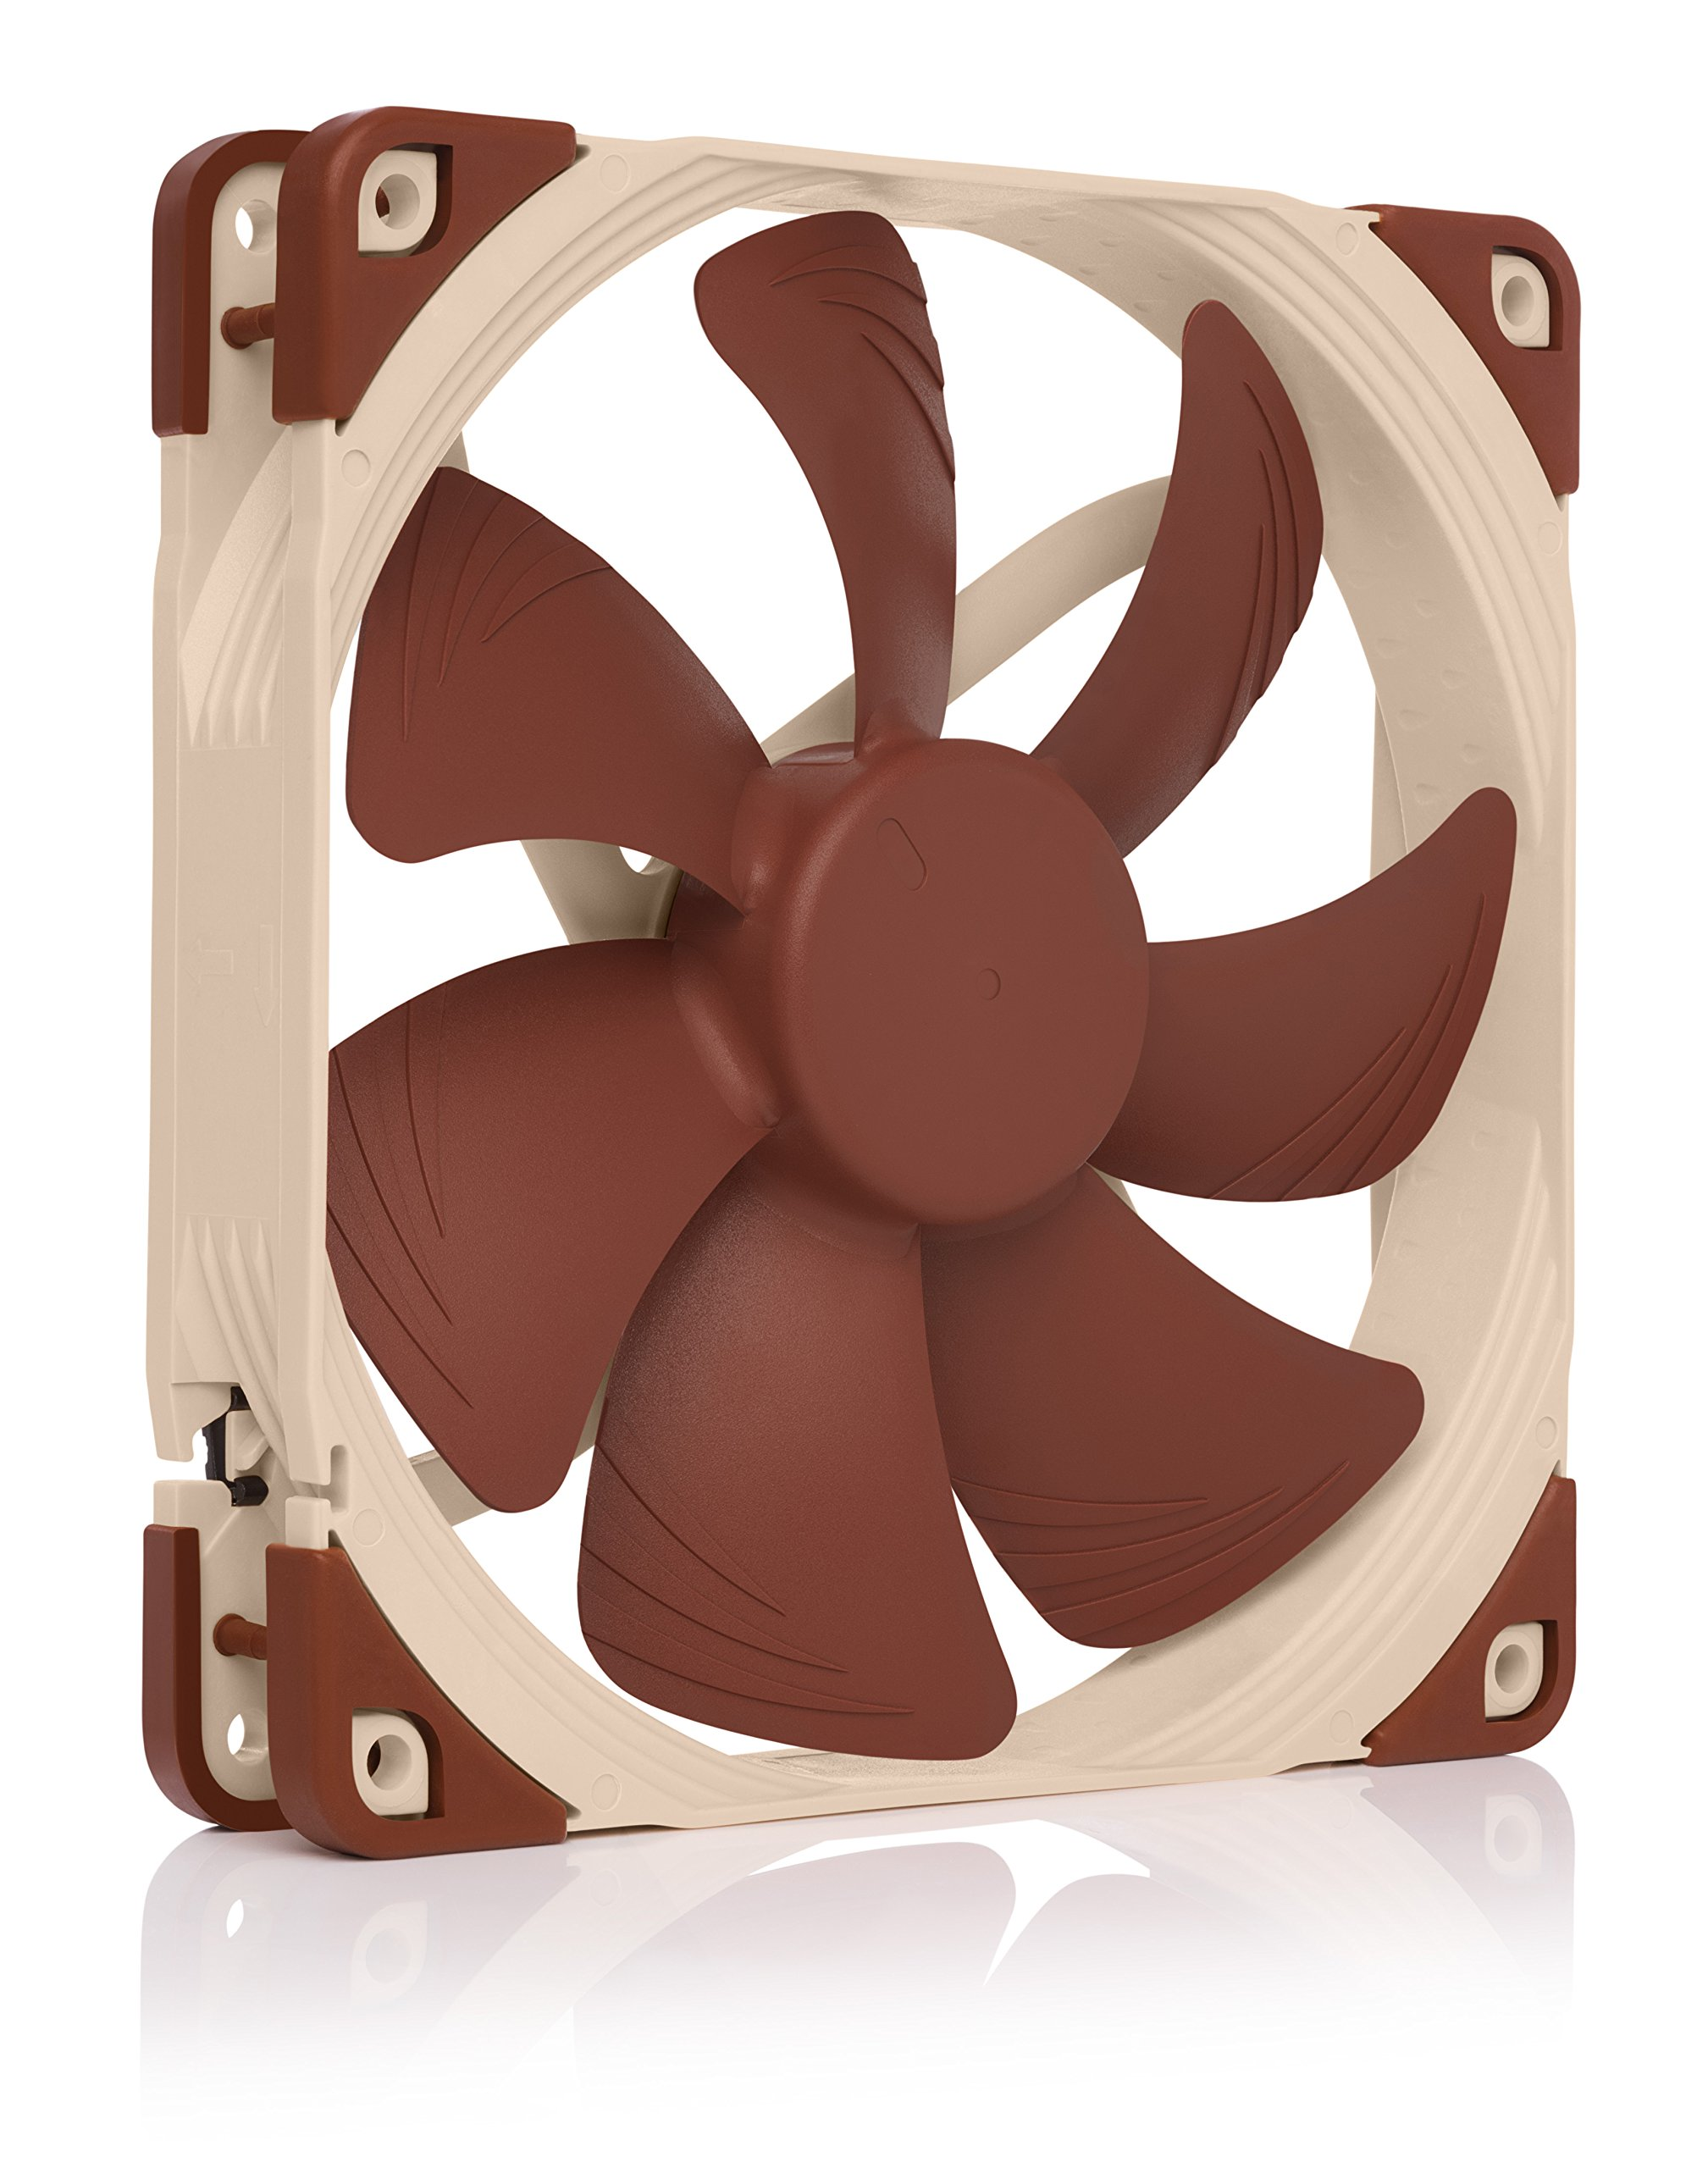 Noctua Nf-a14 Pwm 4-pin Premium Quiet Cooling Fan (140mm ...